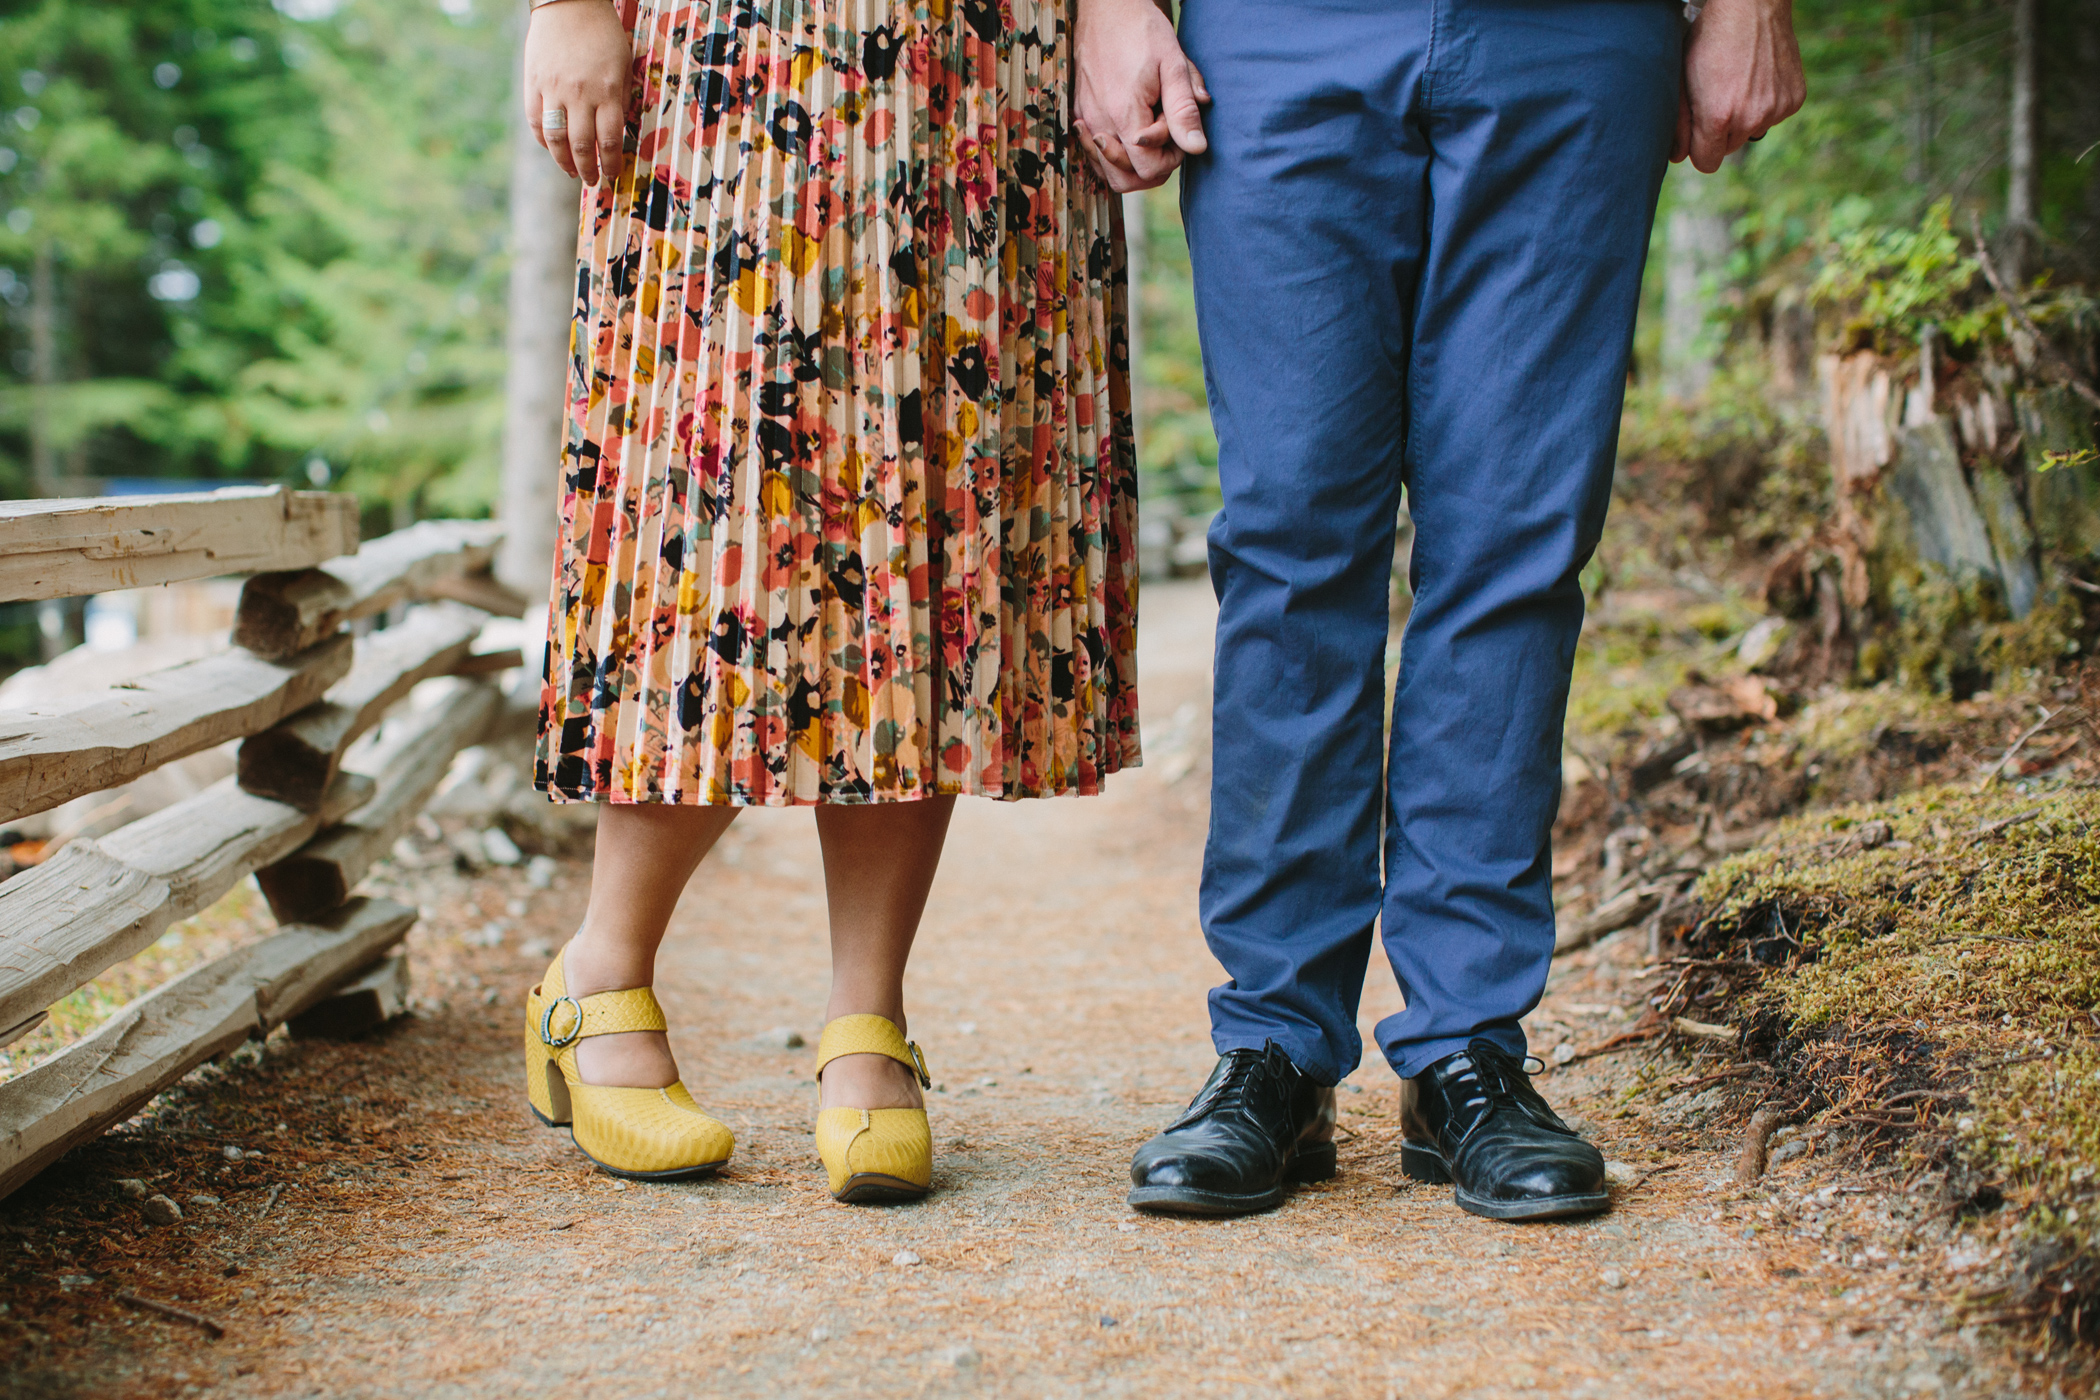 Fluevog Engagement Shoes